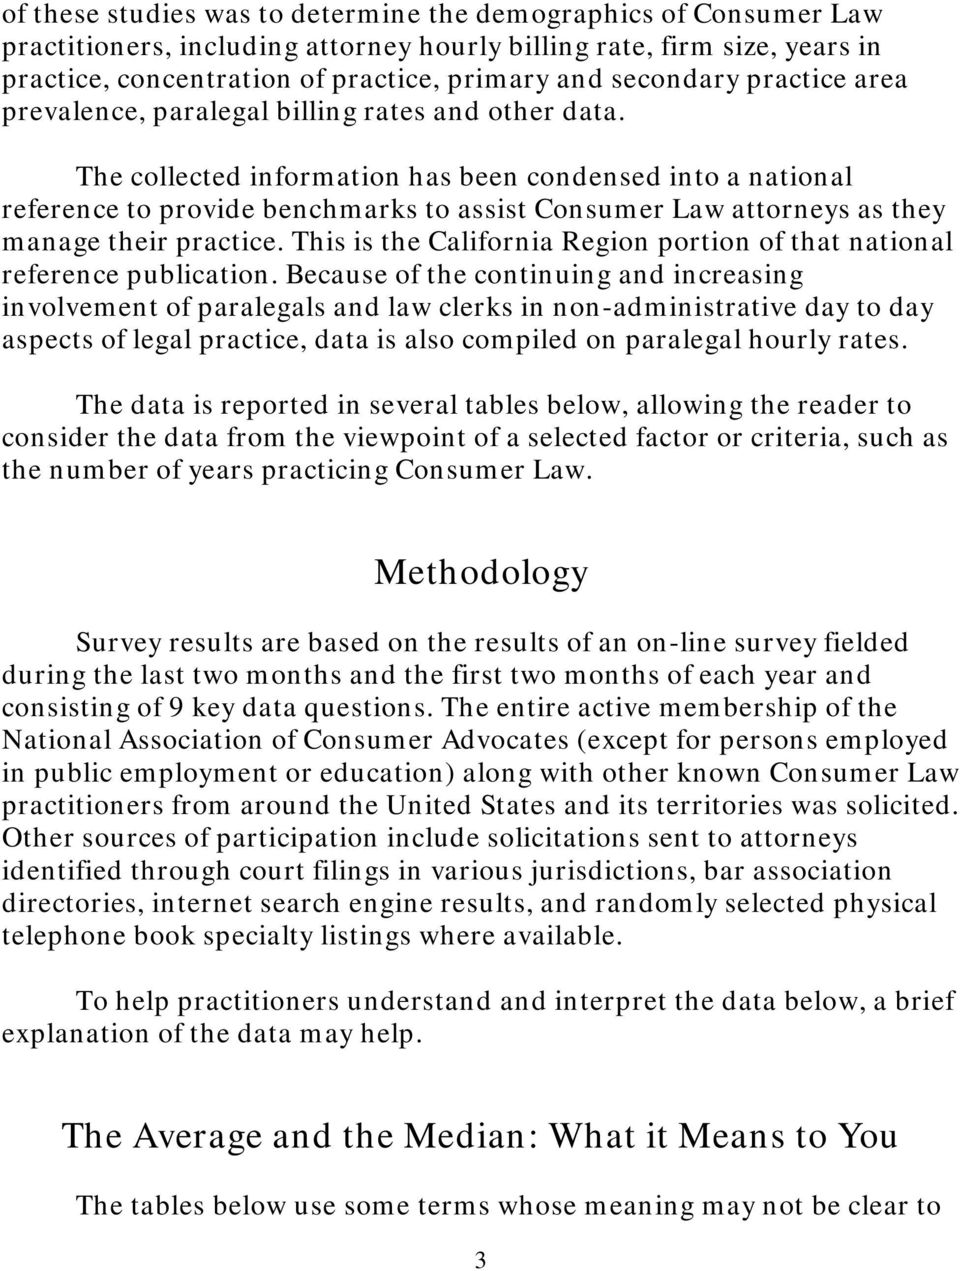 The collected information has been condensed into a national reference to provide benchmarks to assist Consumer Law attorneys as they manage their practice.